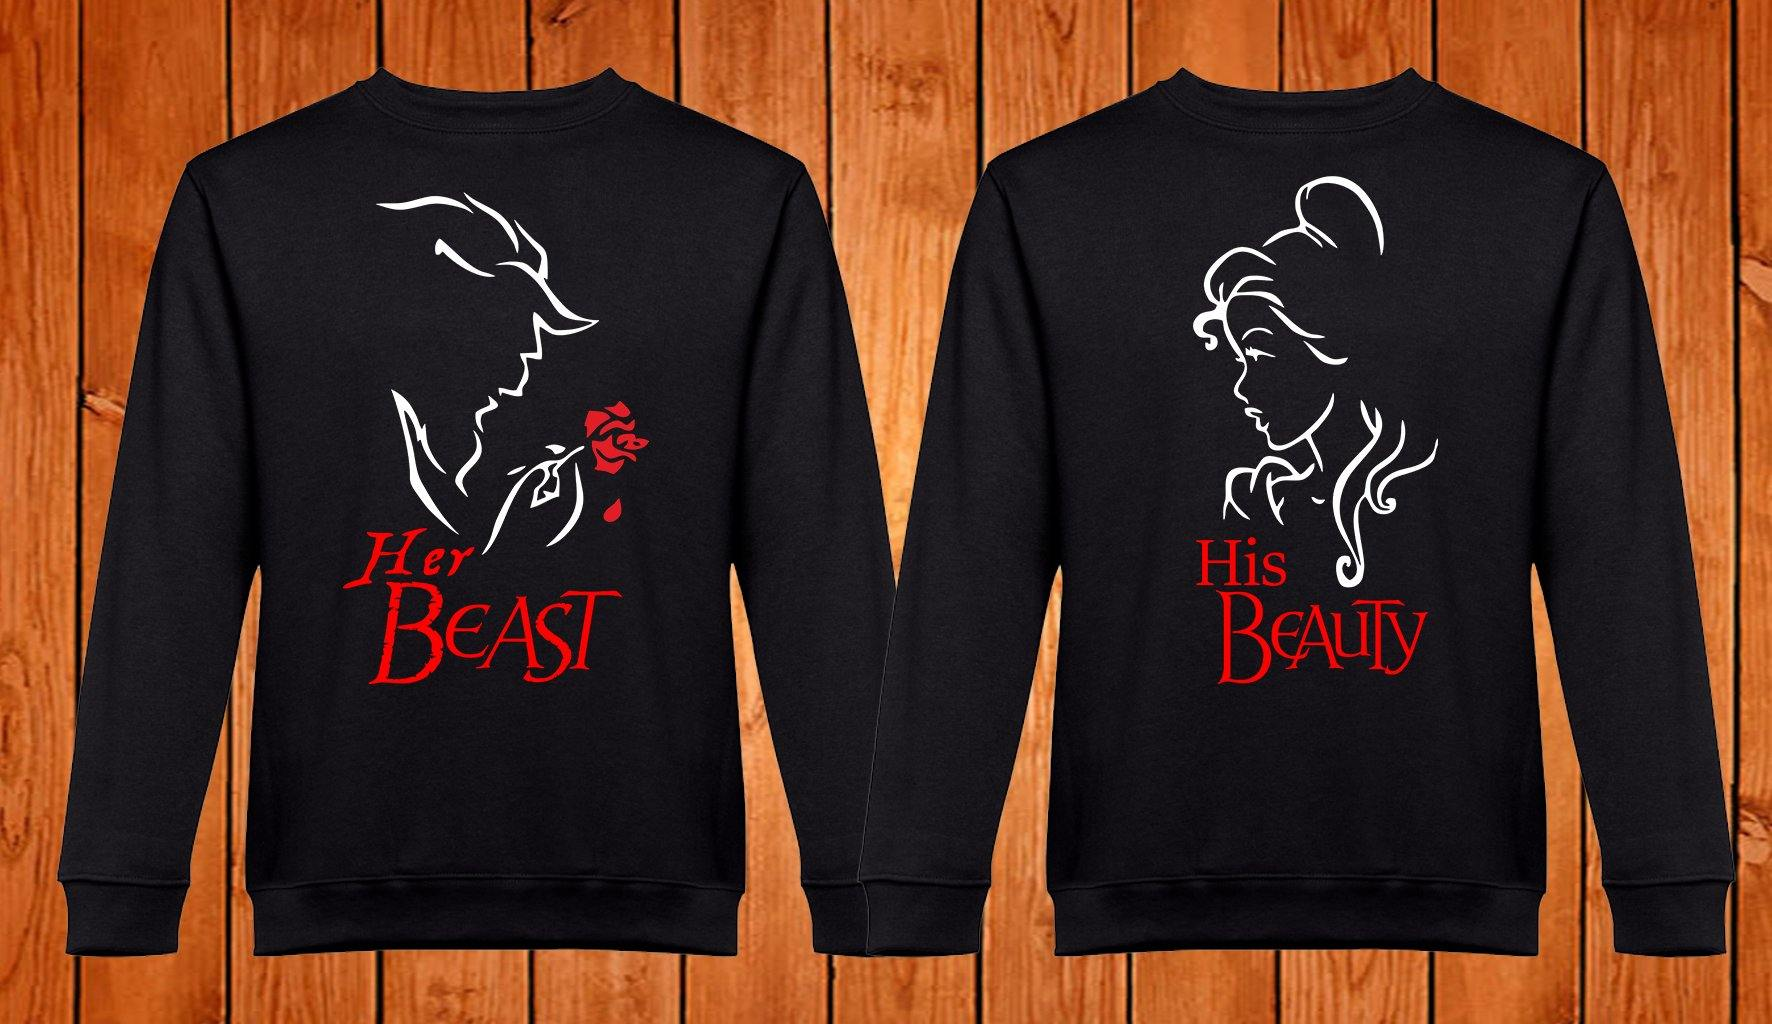 Conjunto Beauty - Beast 2